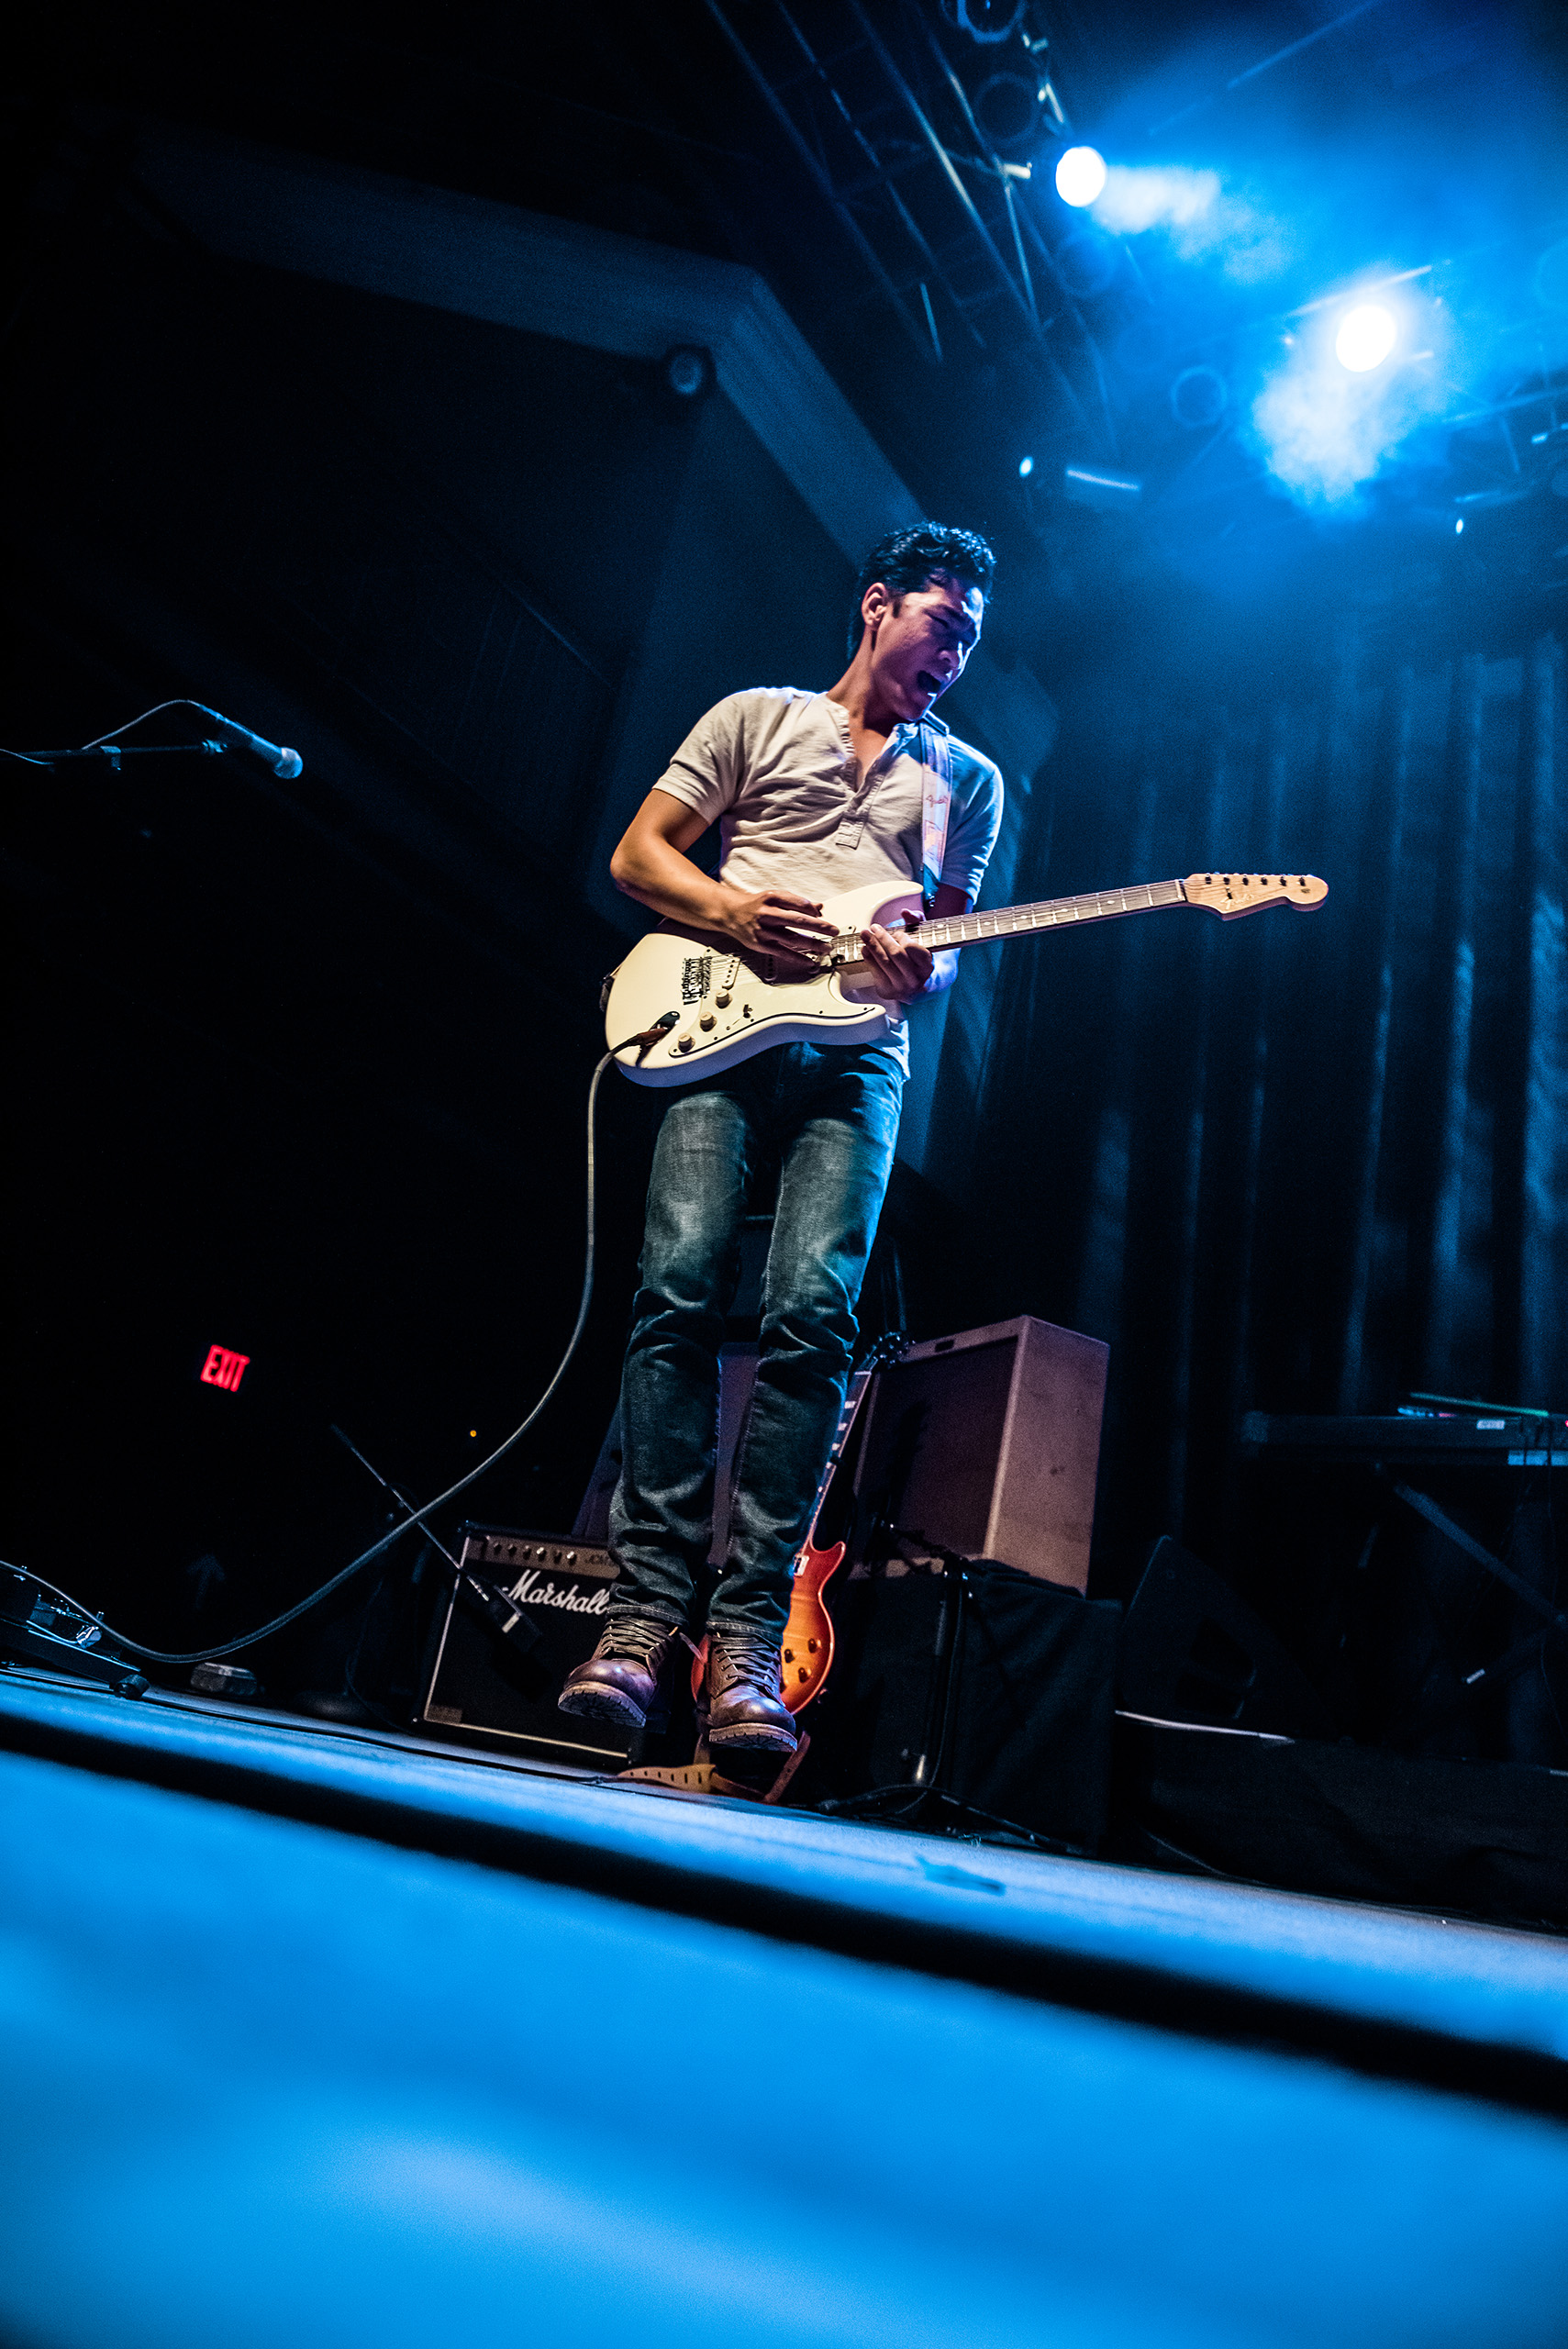 Skyline Hotel - 930 Club - Jeff Lee 9.jpg